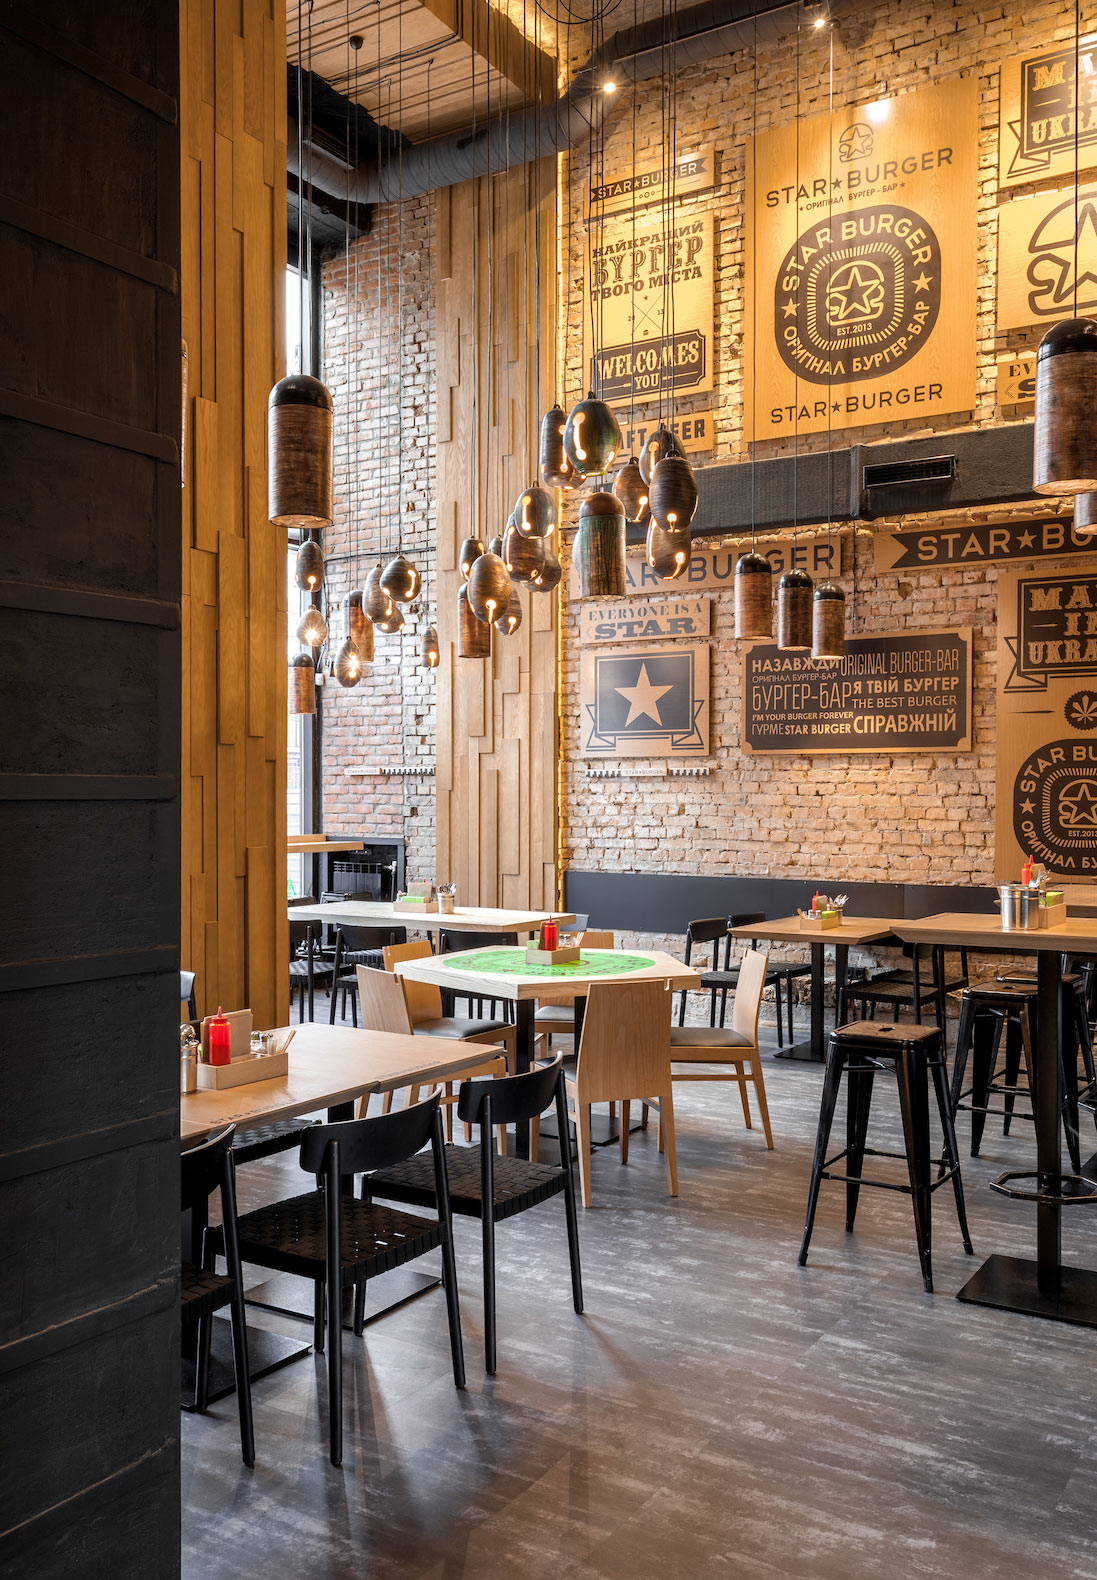 Star Burger: An Industrial Restaurant Design - Adorable Home